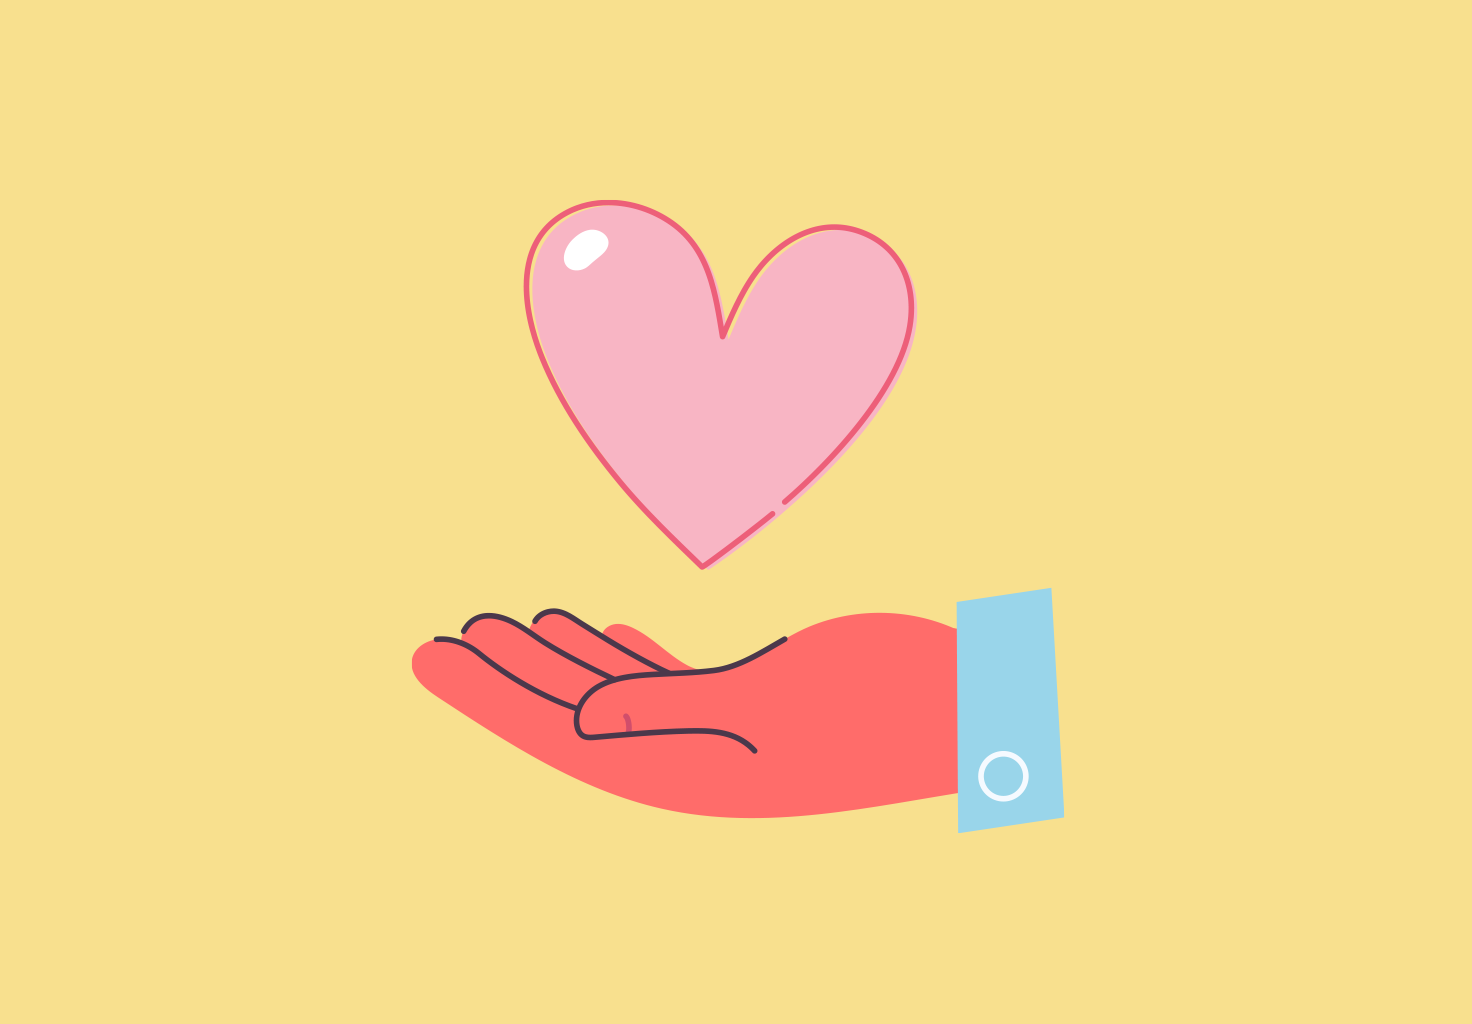 An illustration of a heart in the palm of someone's hand.